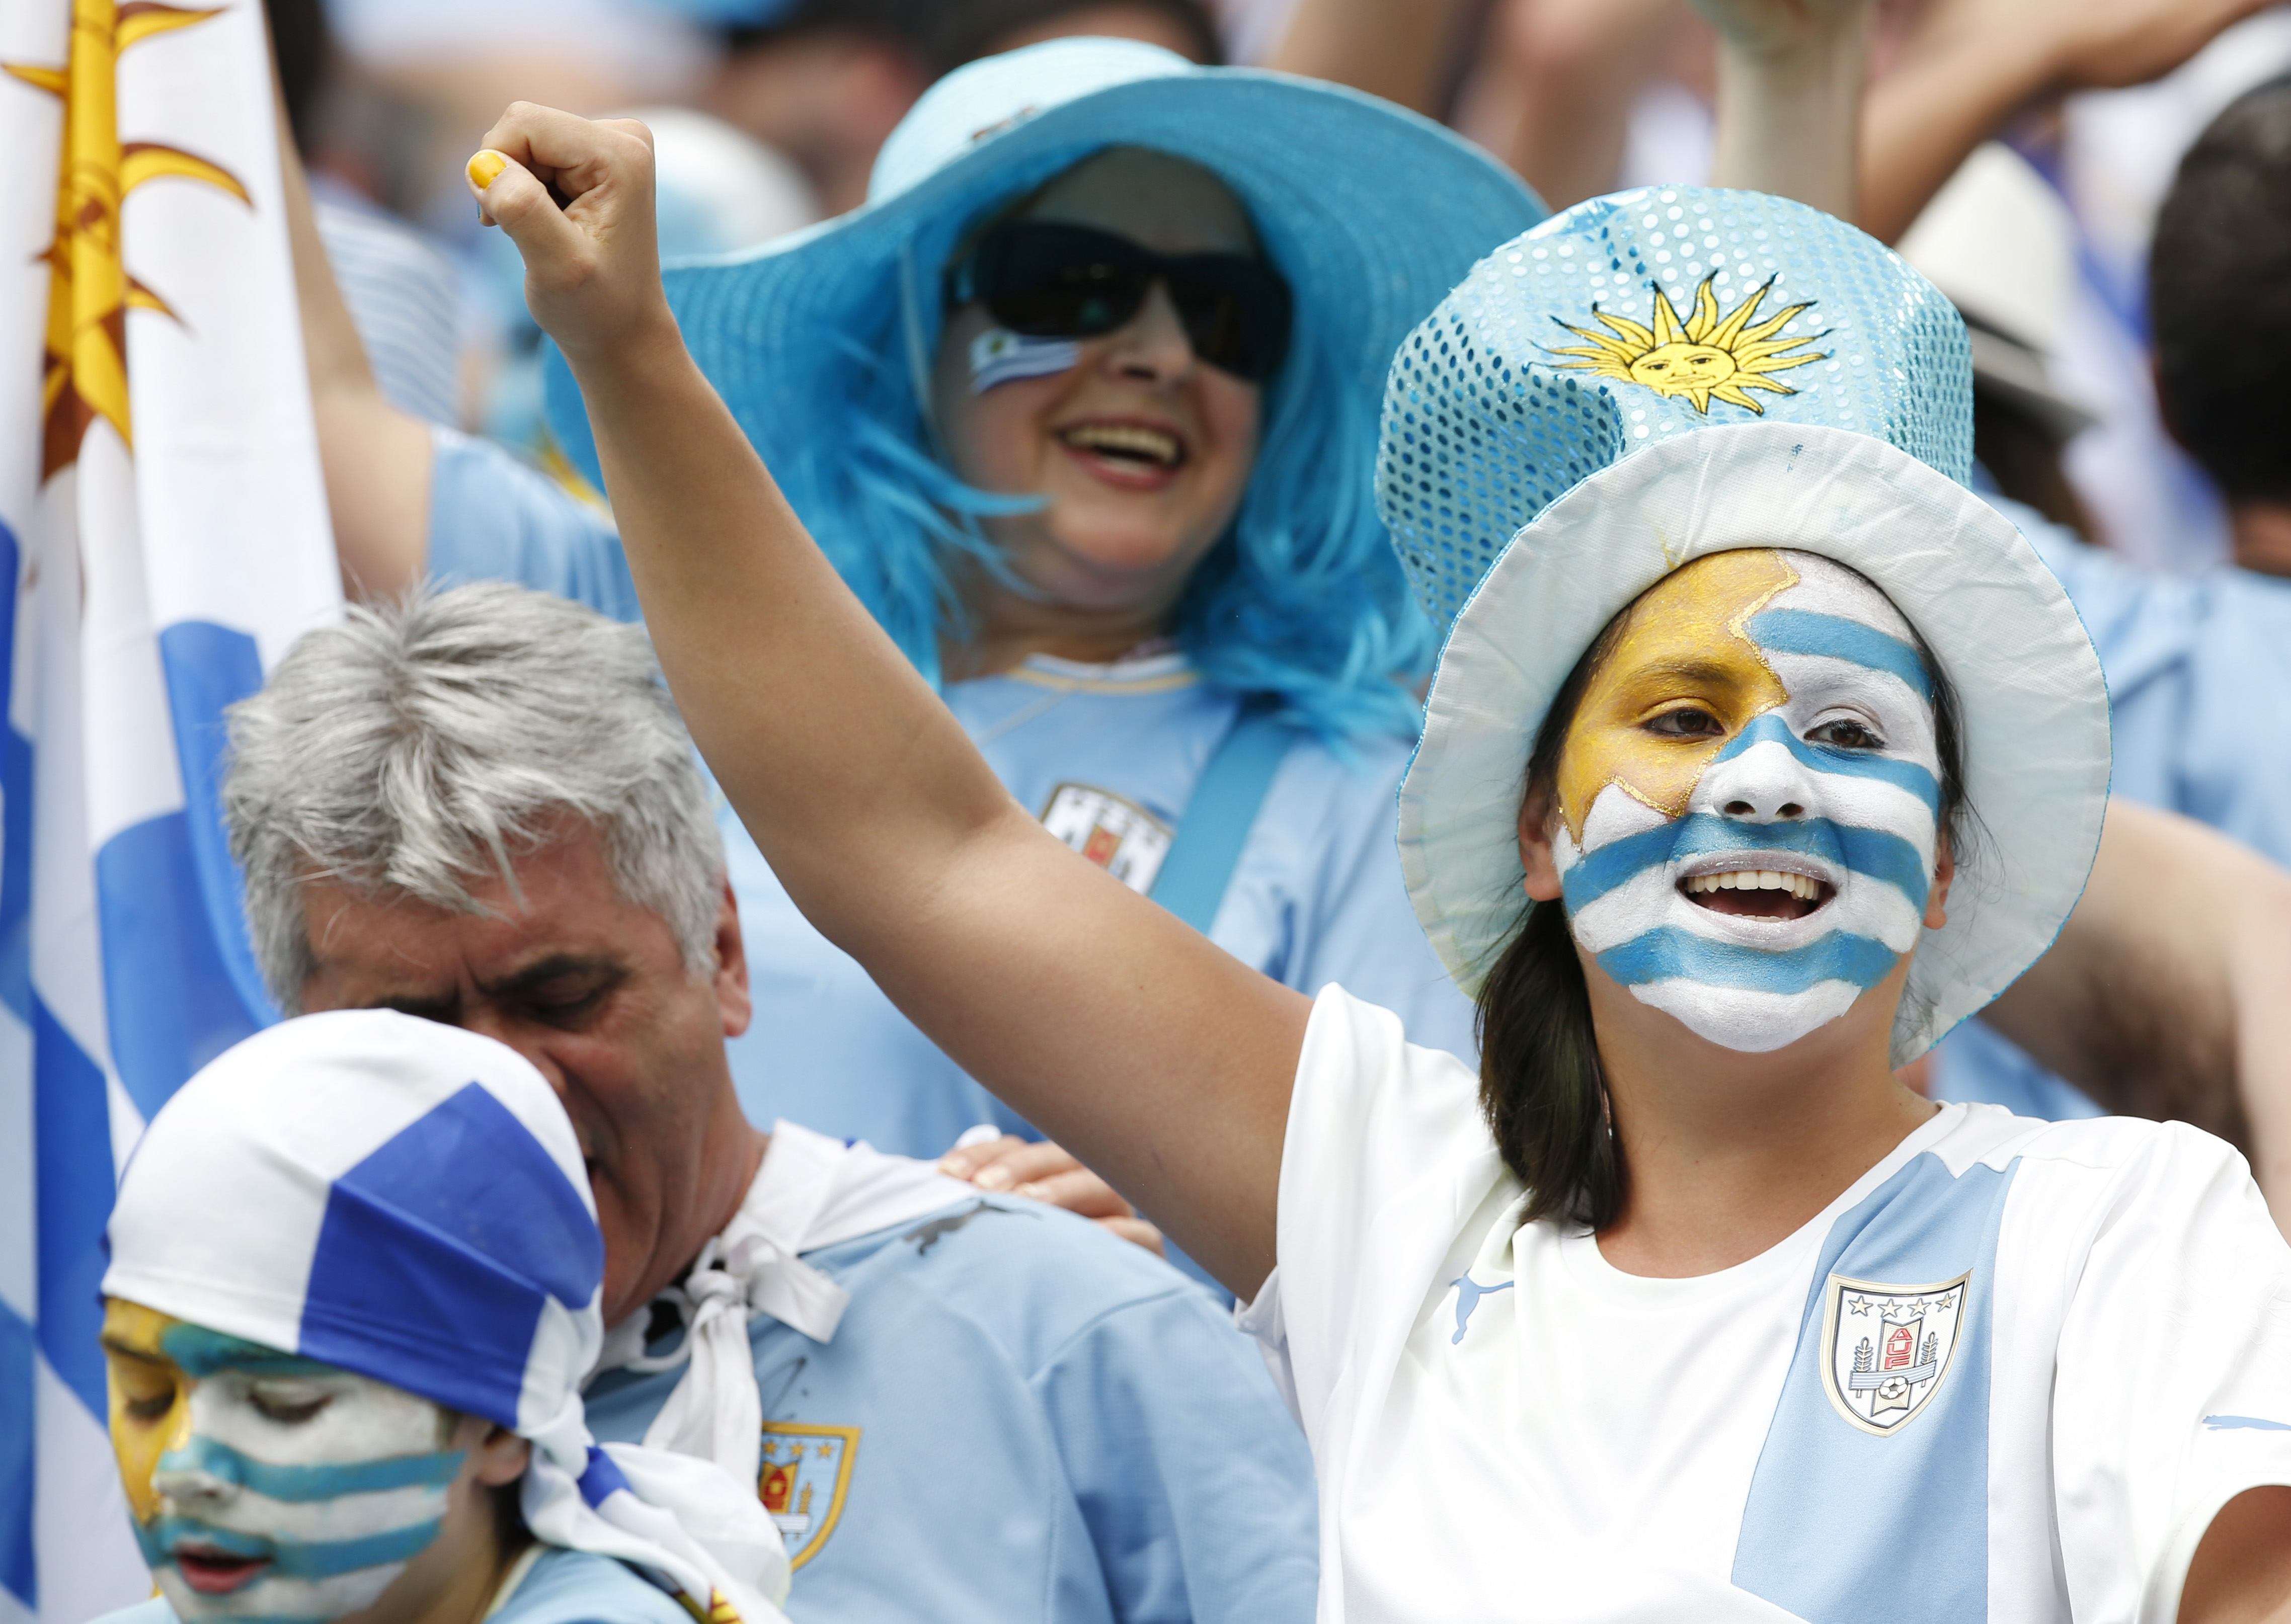 How to watch France vs Argentina live stream